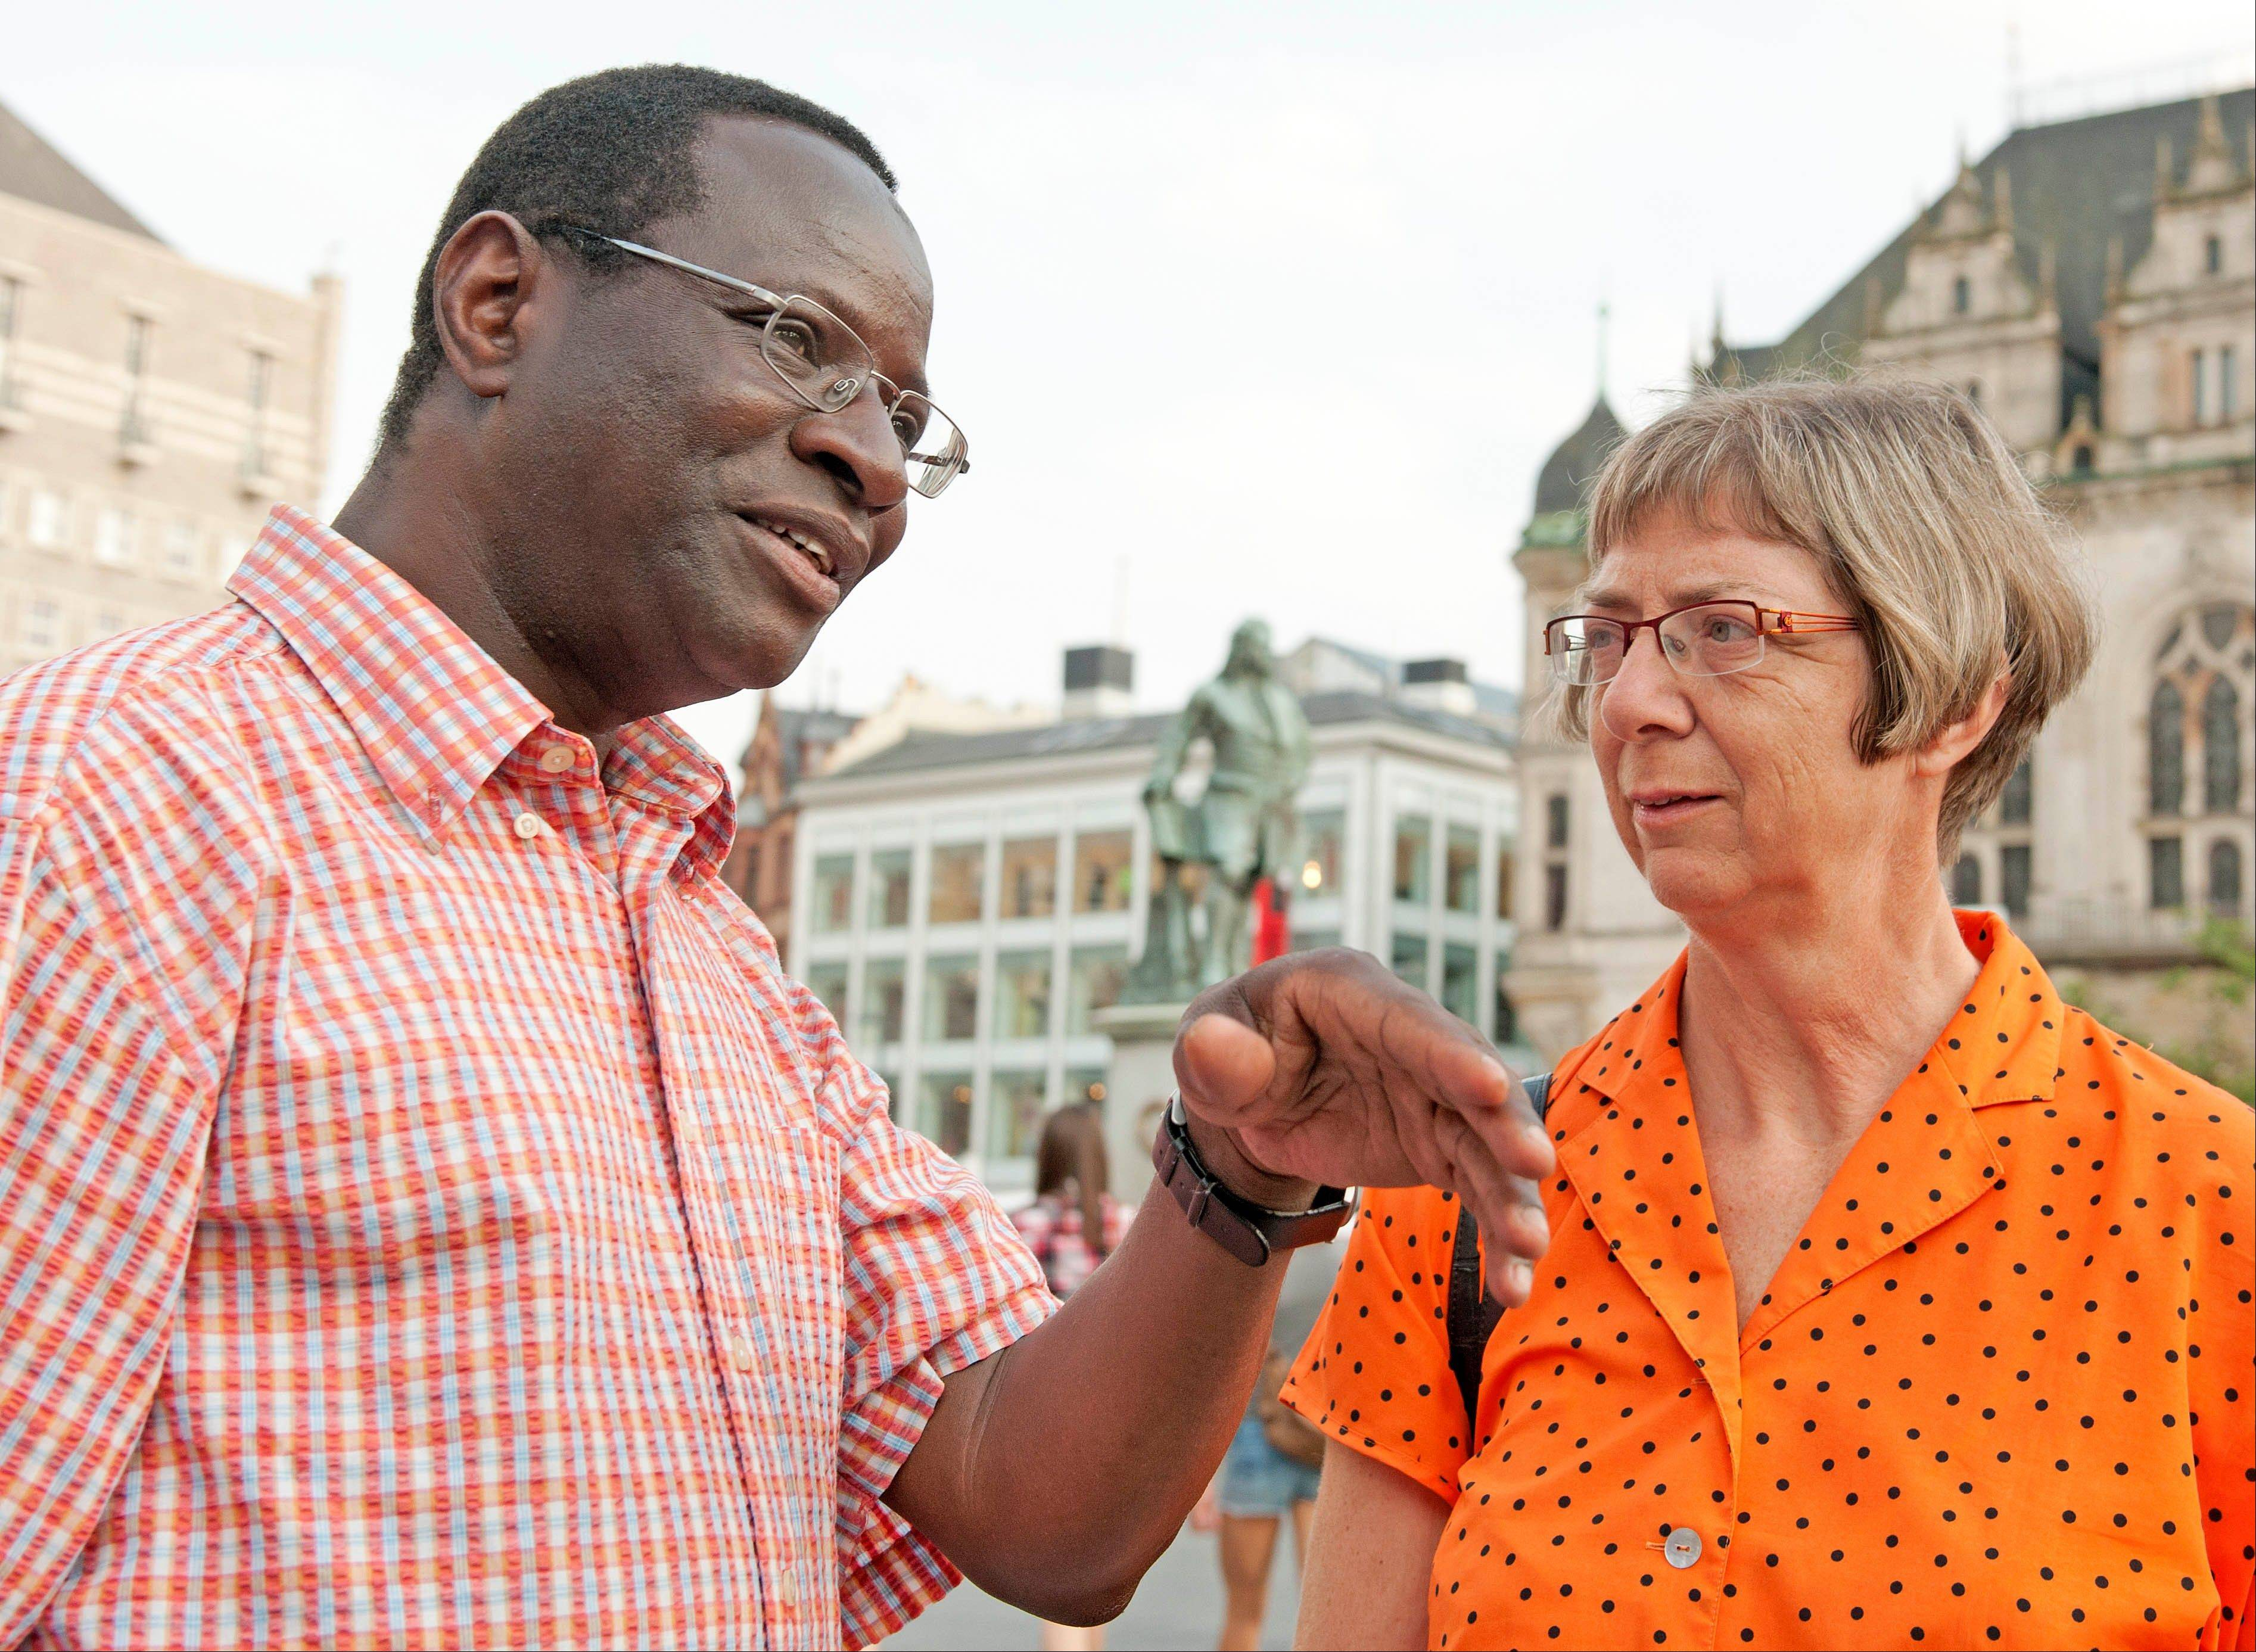 In this picture taken July 25, 2013, Karamba Diaby, a German Social Democratic Party candidate talks with citizen Heidi Juergens during an election campaign in Halle, central Germany, Thursday, July 25, 2013. He was born in Senegal and moved to the former GDR to study at the University of Leipzig. Diaby, now 51, is campaigning for a Bundestag seat to become the country's first black member of Parliament.